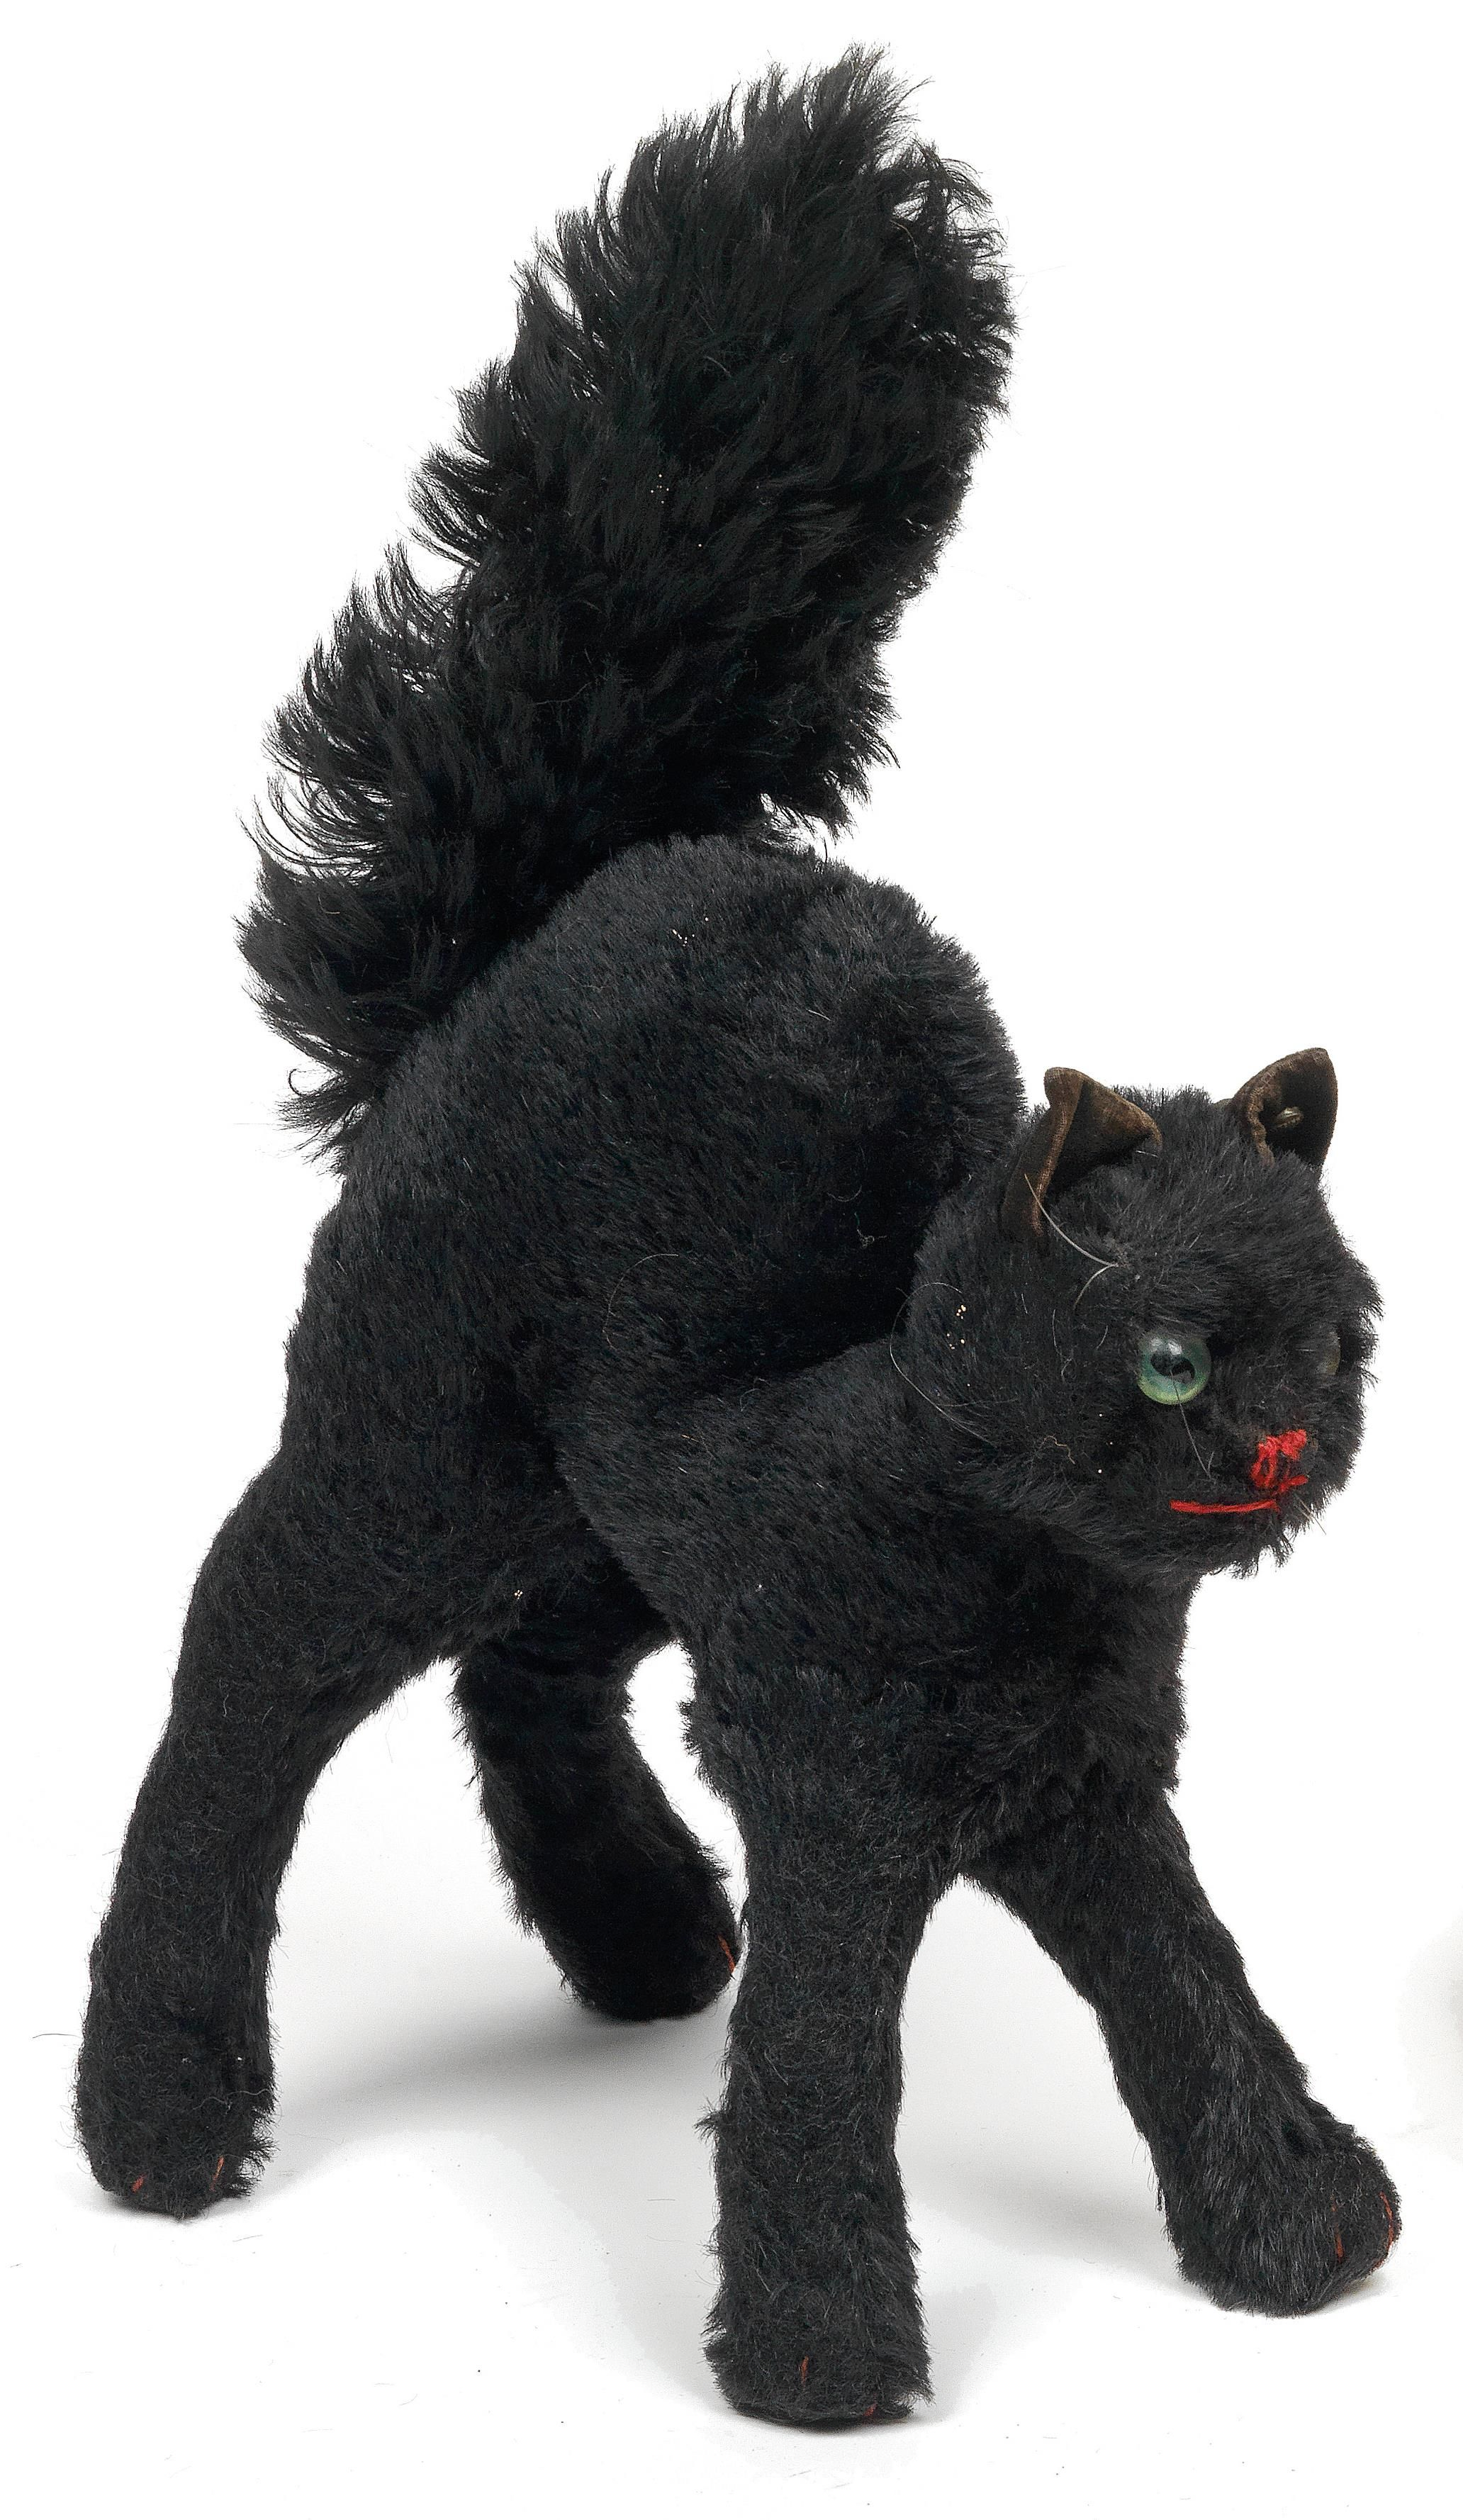 Vintage Black Cat Plush From Steiff Antique Early Toy S